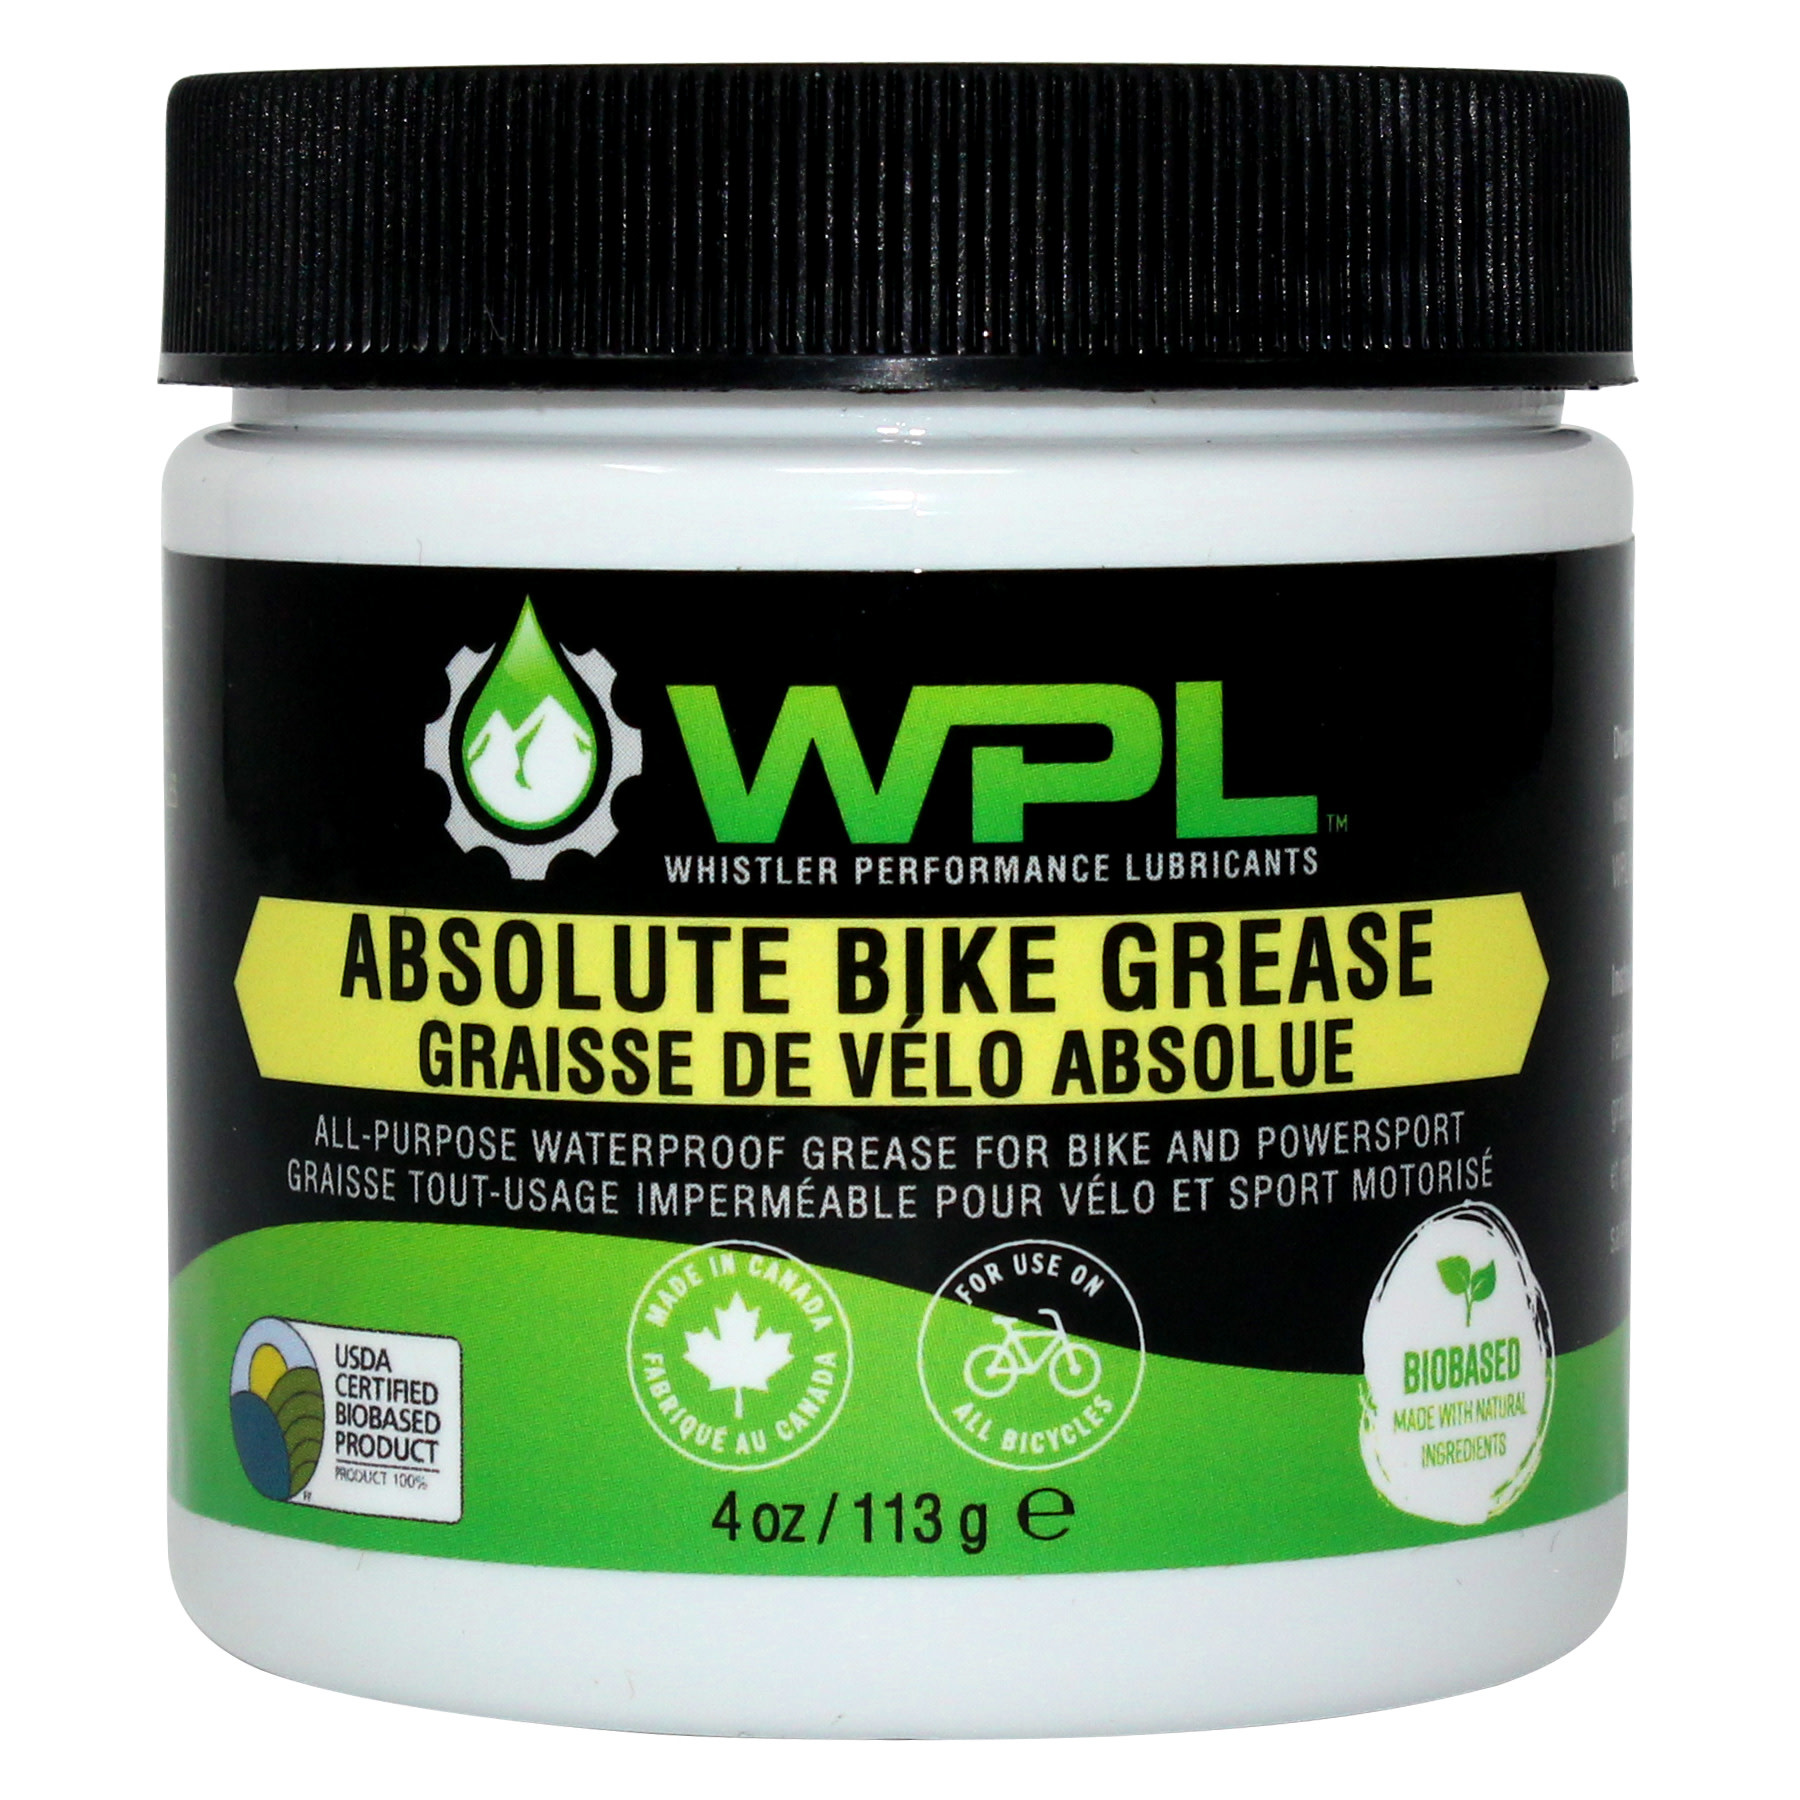 WPL WPL Absolute Bike Grease (4oz)